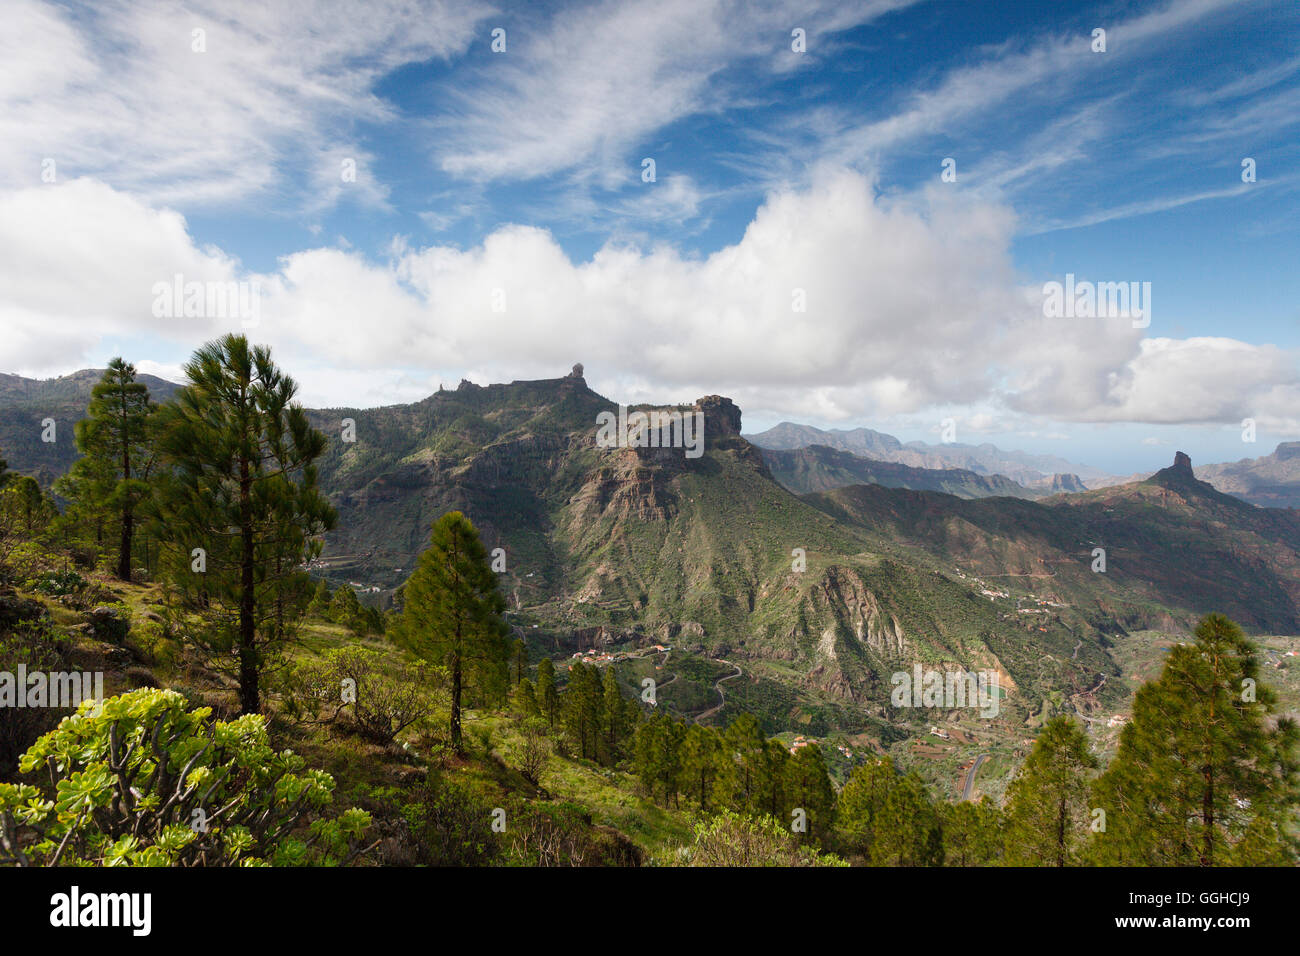 Roque Nublo, volcanic rock, landmark, and Roque Bentayga, Parque Rural del Nublo, Natural Preserve, mountains, UNESCO - Stock Image